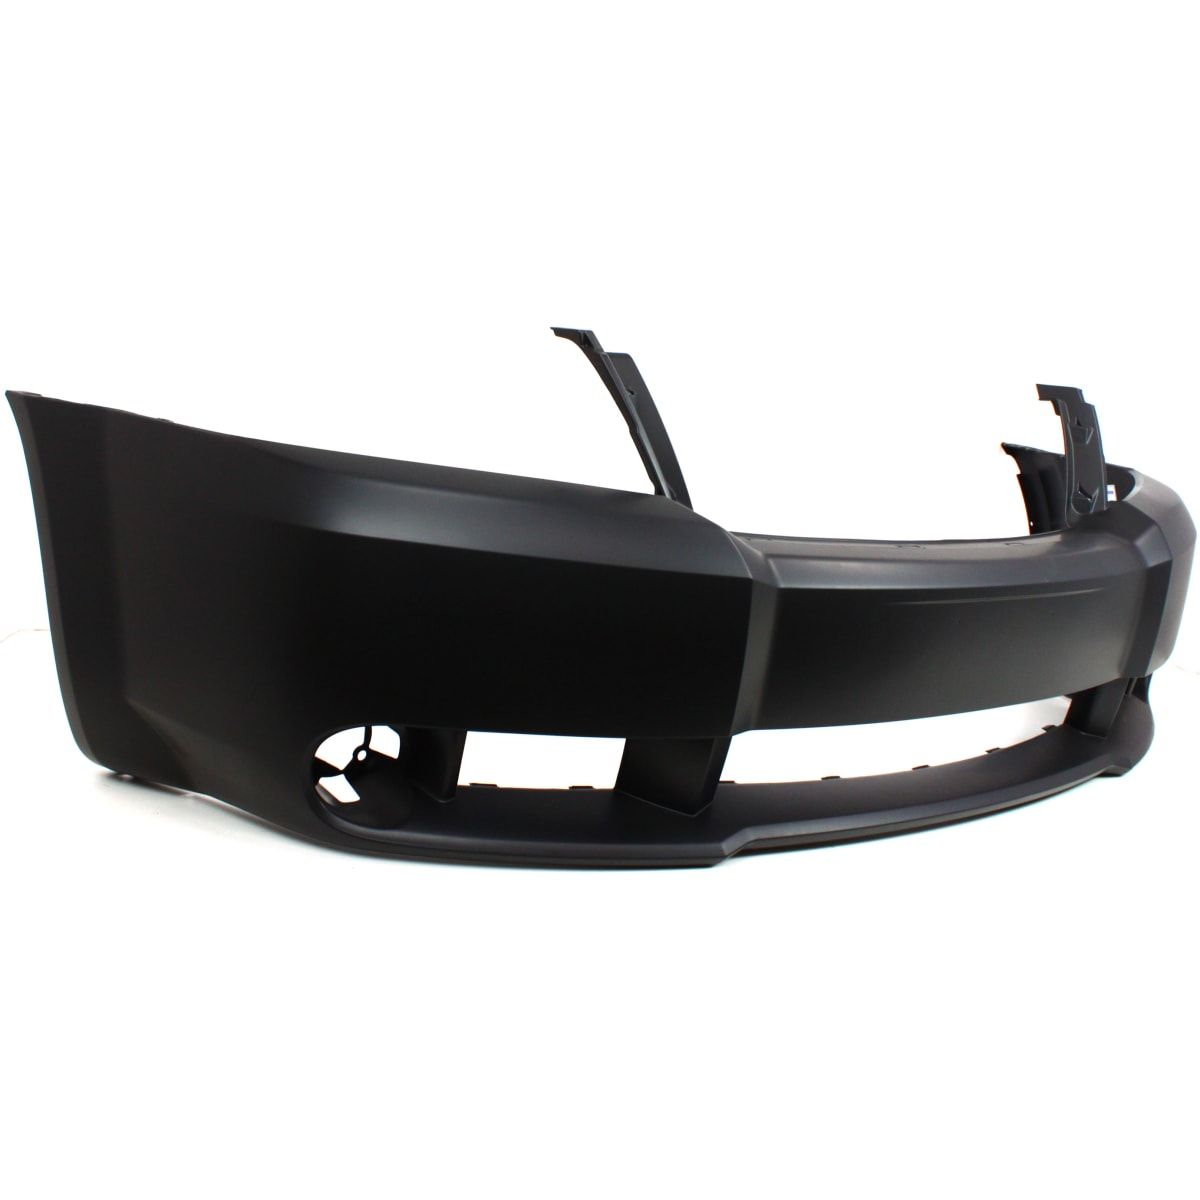 Replacement Bumper Cover Arbd010310pq Carparts Com Bumpers Cover Replacement